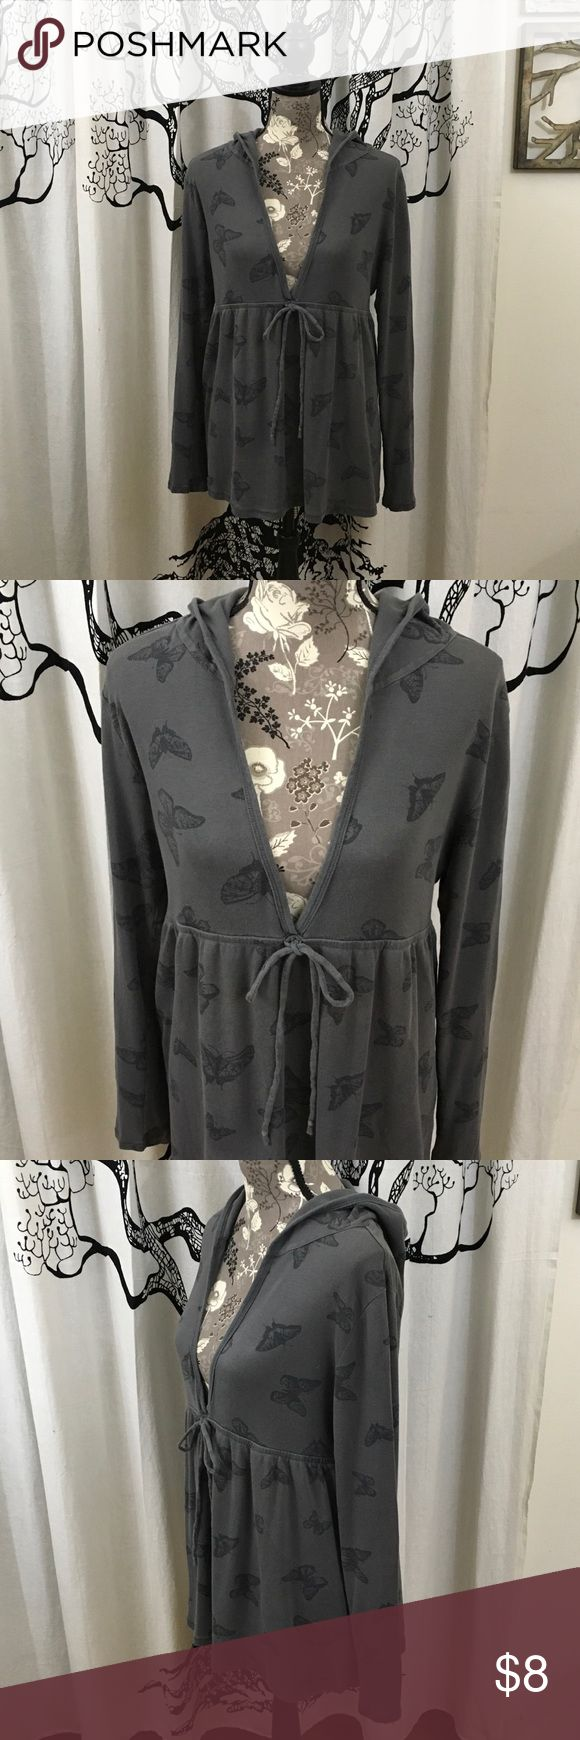 "Old Navy Soft Butterfly Babydoll Tunic Hoodie SZ L Super soft, super cute babydoll style tunic by Old Navy in dark grey with a butterfly print. Deep v-neck, tie front, long sleeves and hood. Super soft brushed 100% cotton. Gently loved, excellent condition with no imperfections. SZ L but may fit M/XL depending on how you like your fit. Please check measurements. 20"" bust, 19"" stretchy empire waist, 27.5"" length. Great for after yoga, weekends, or really any time you want a really…"